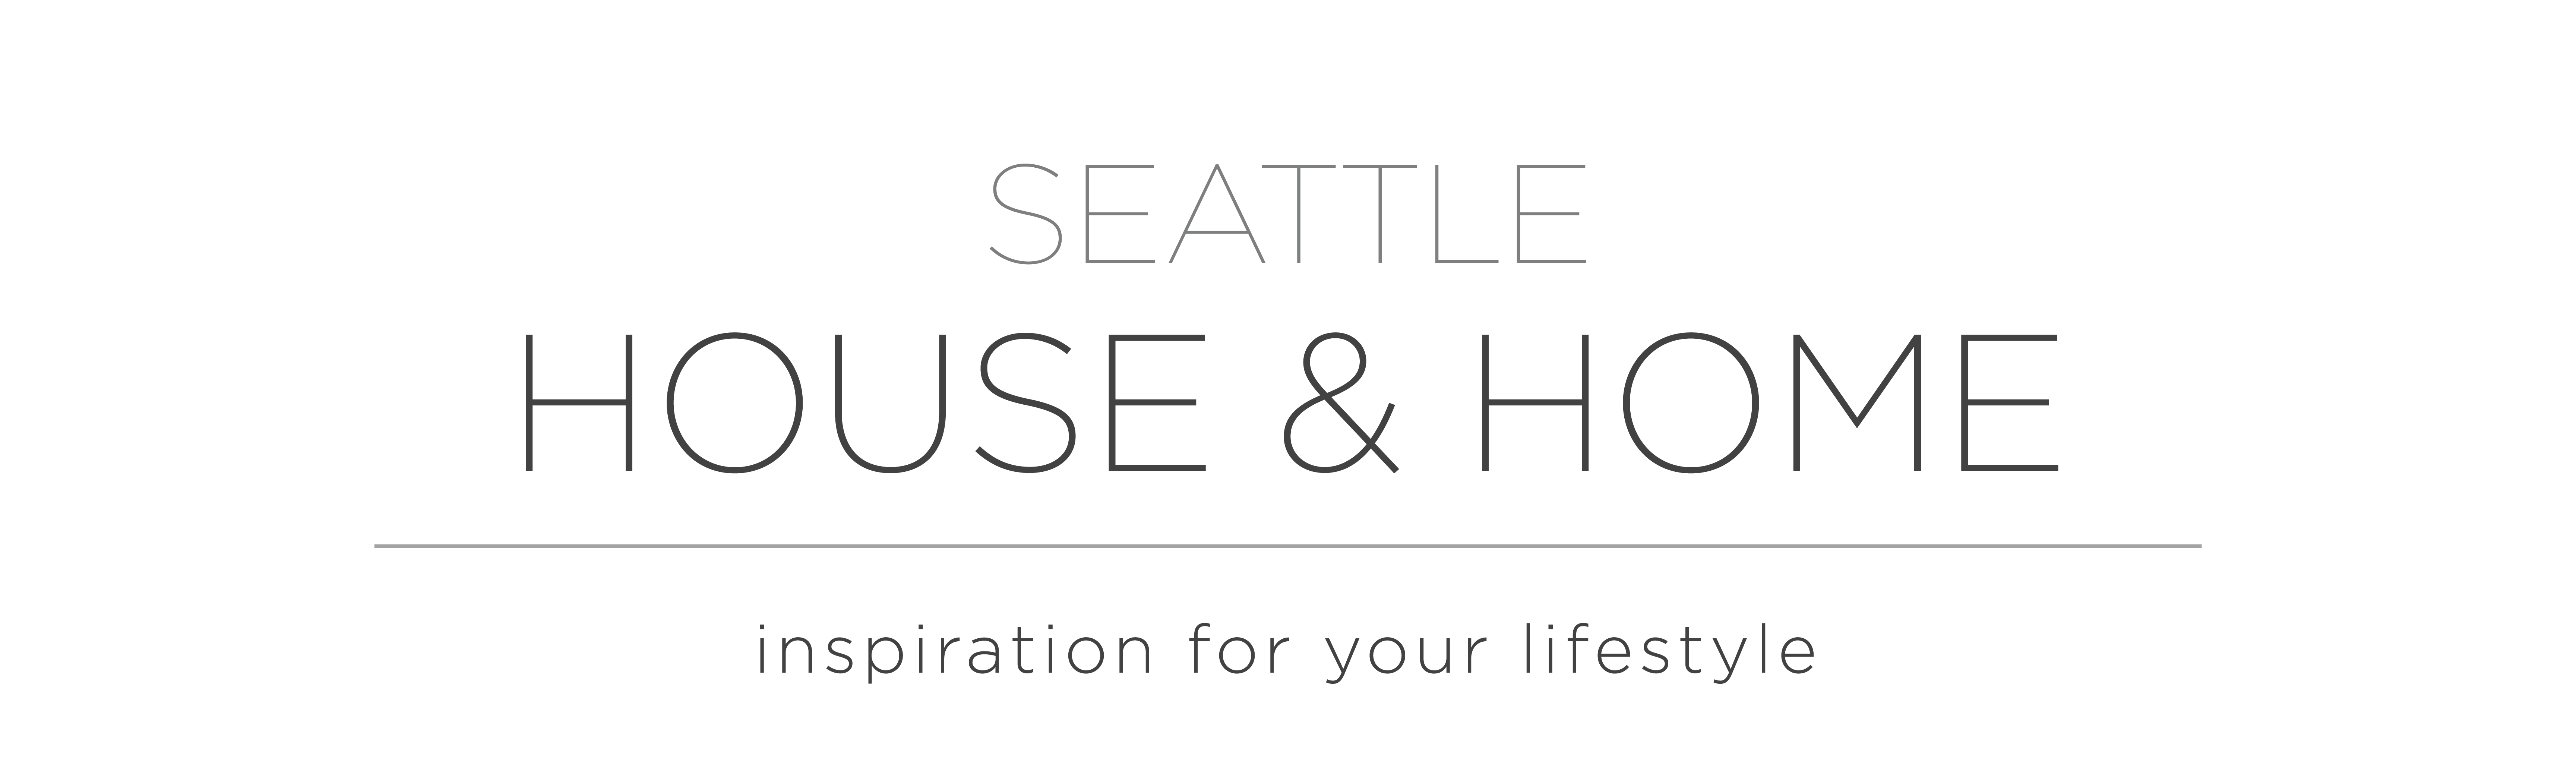 Seattle House & Home